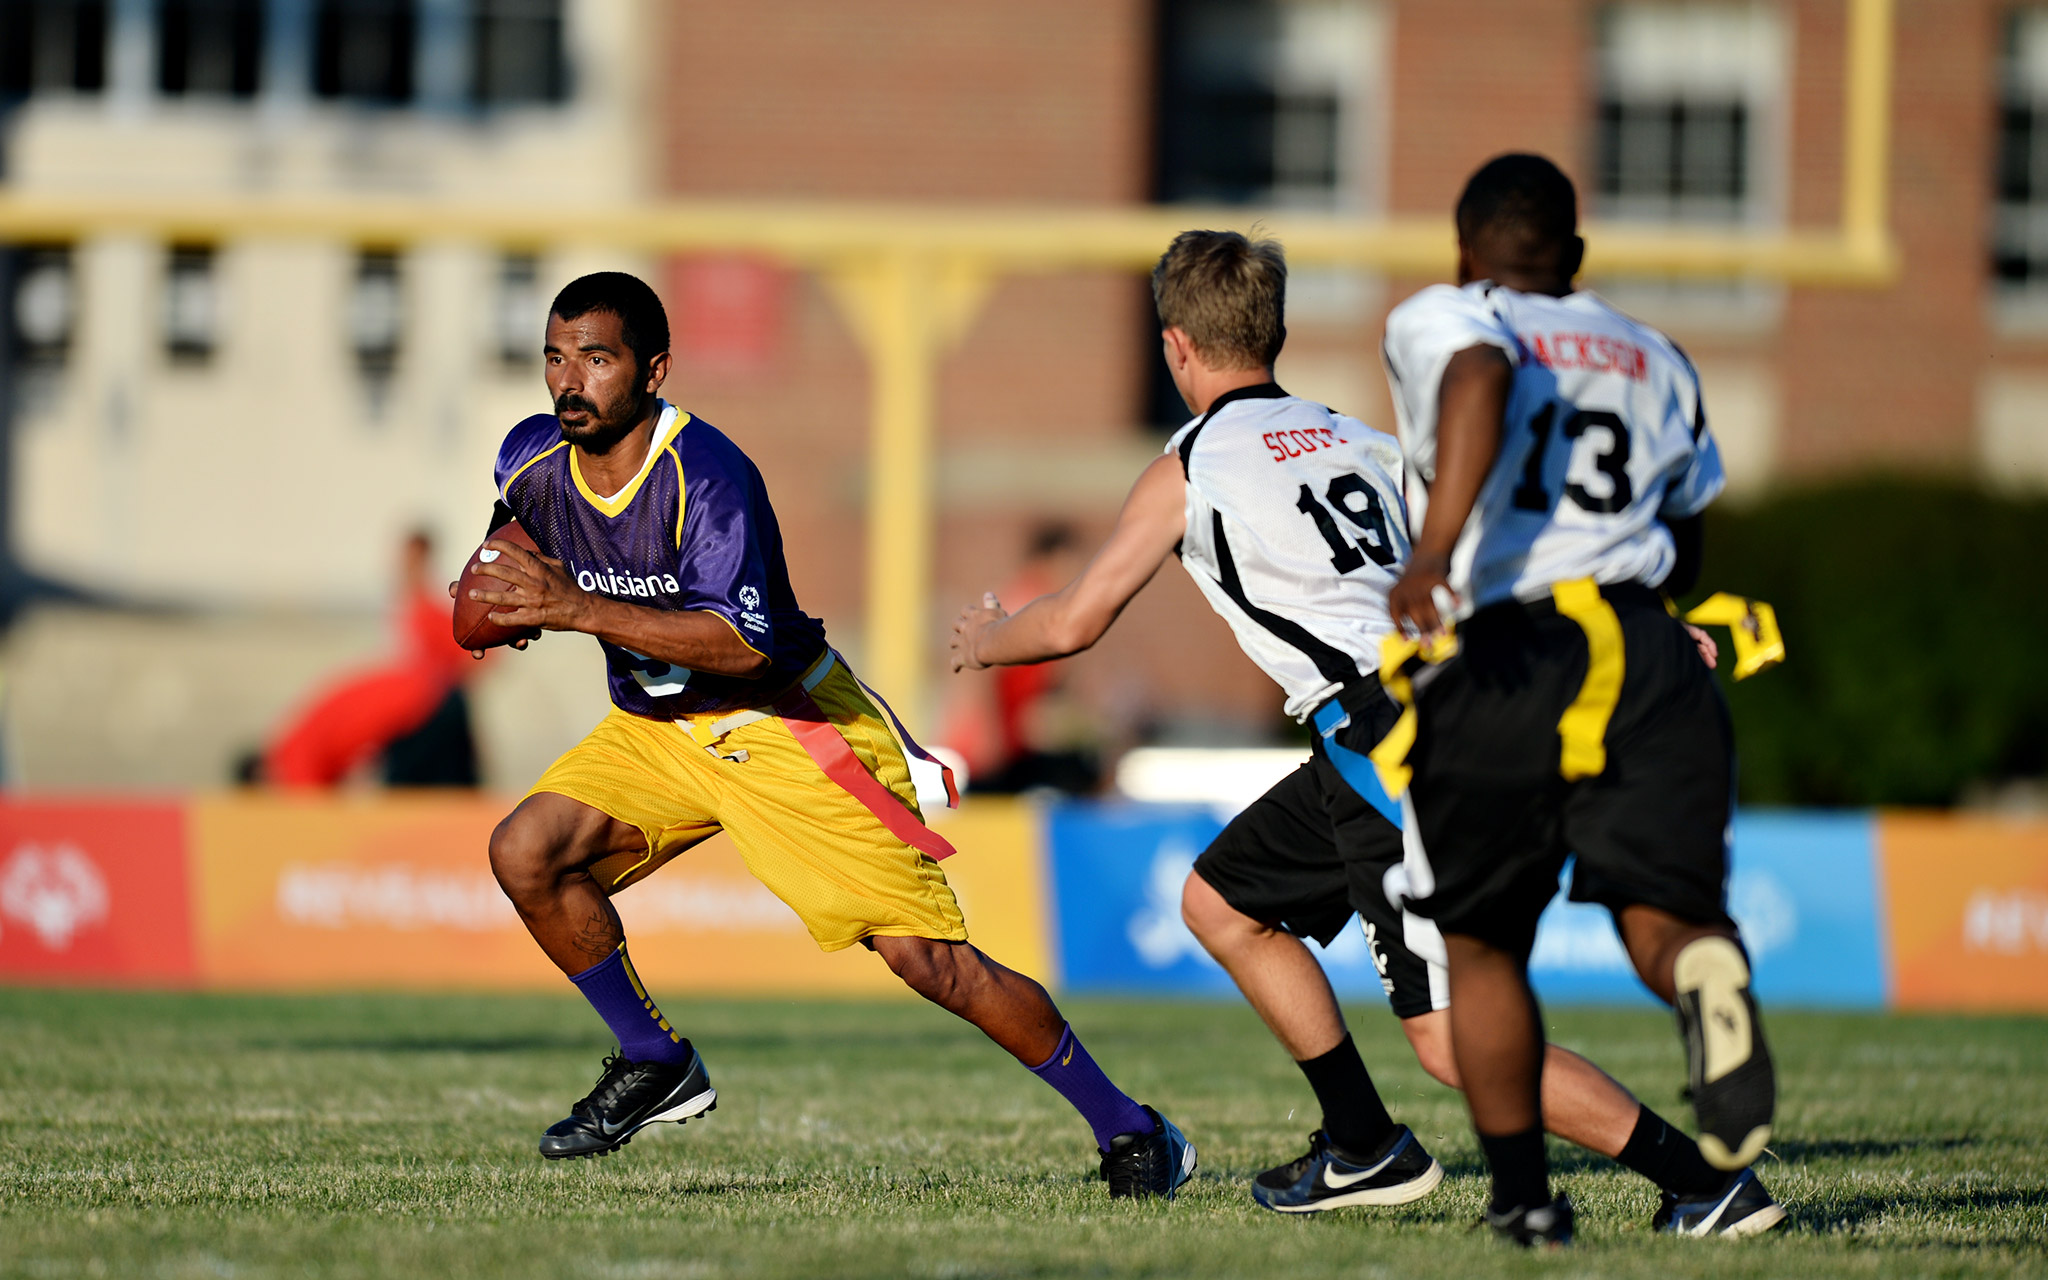 Albert AJ Friou of Louisiana, left, was among the participants in flag football, which made its second appearance at the USA Games. Louisiana went on to win gold.